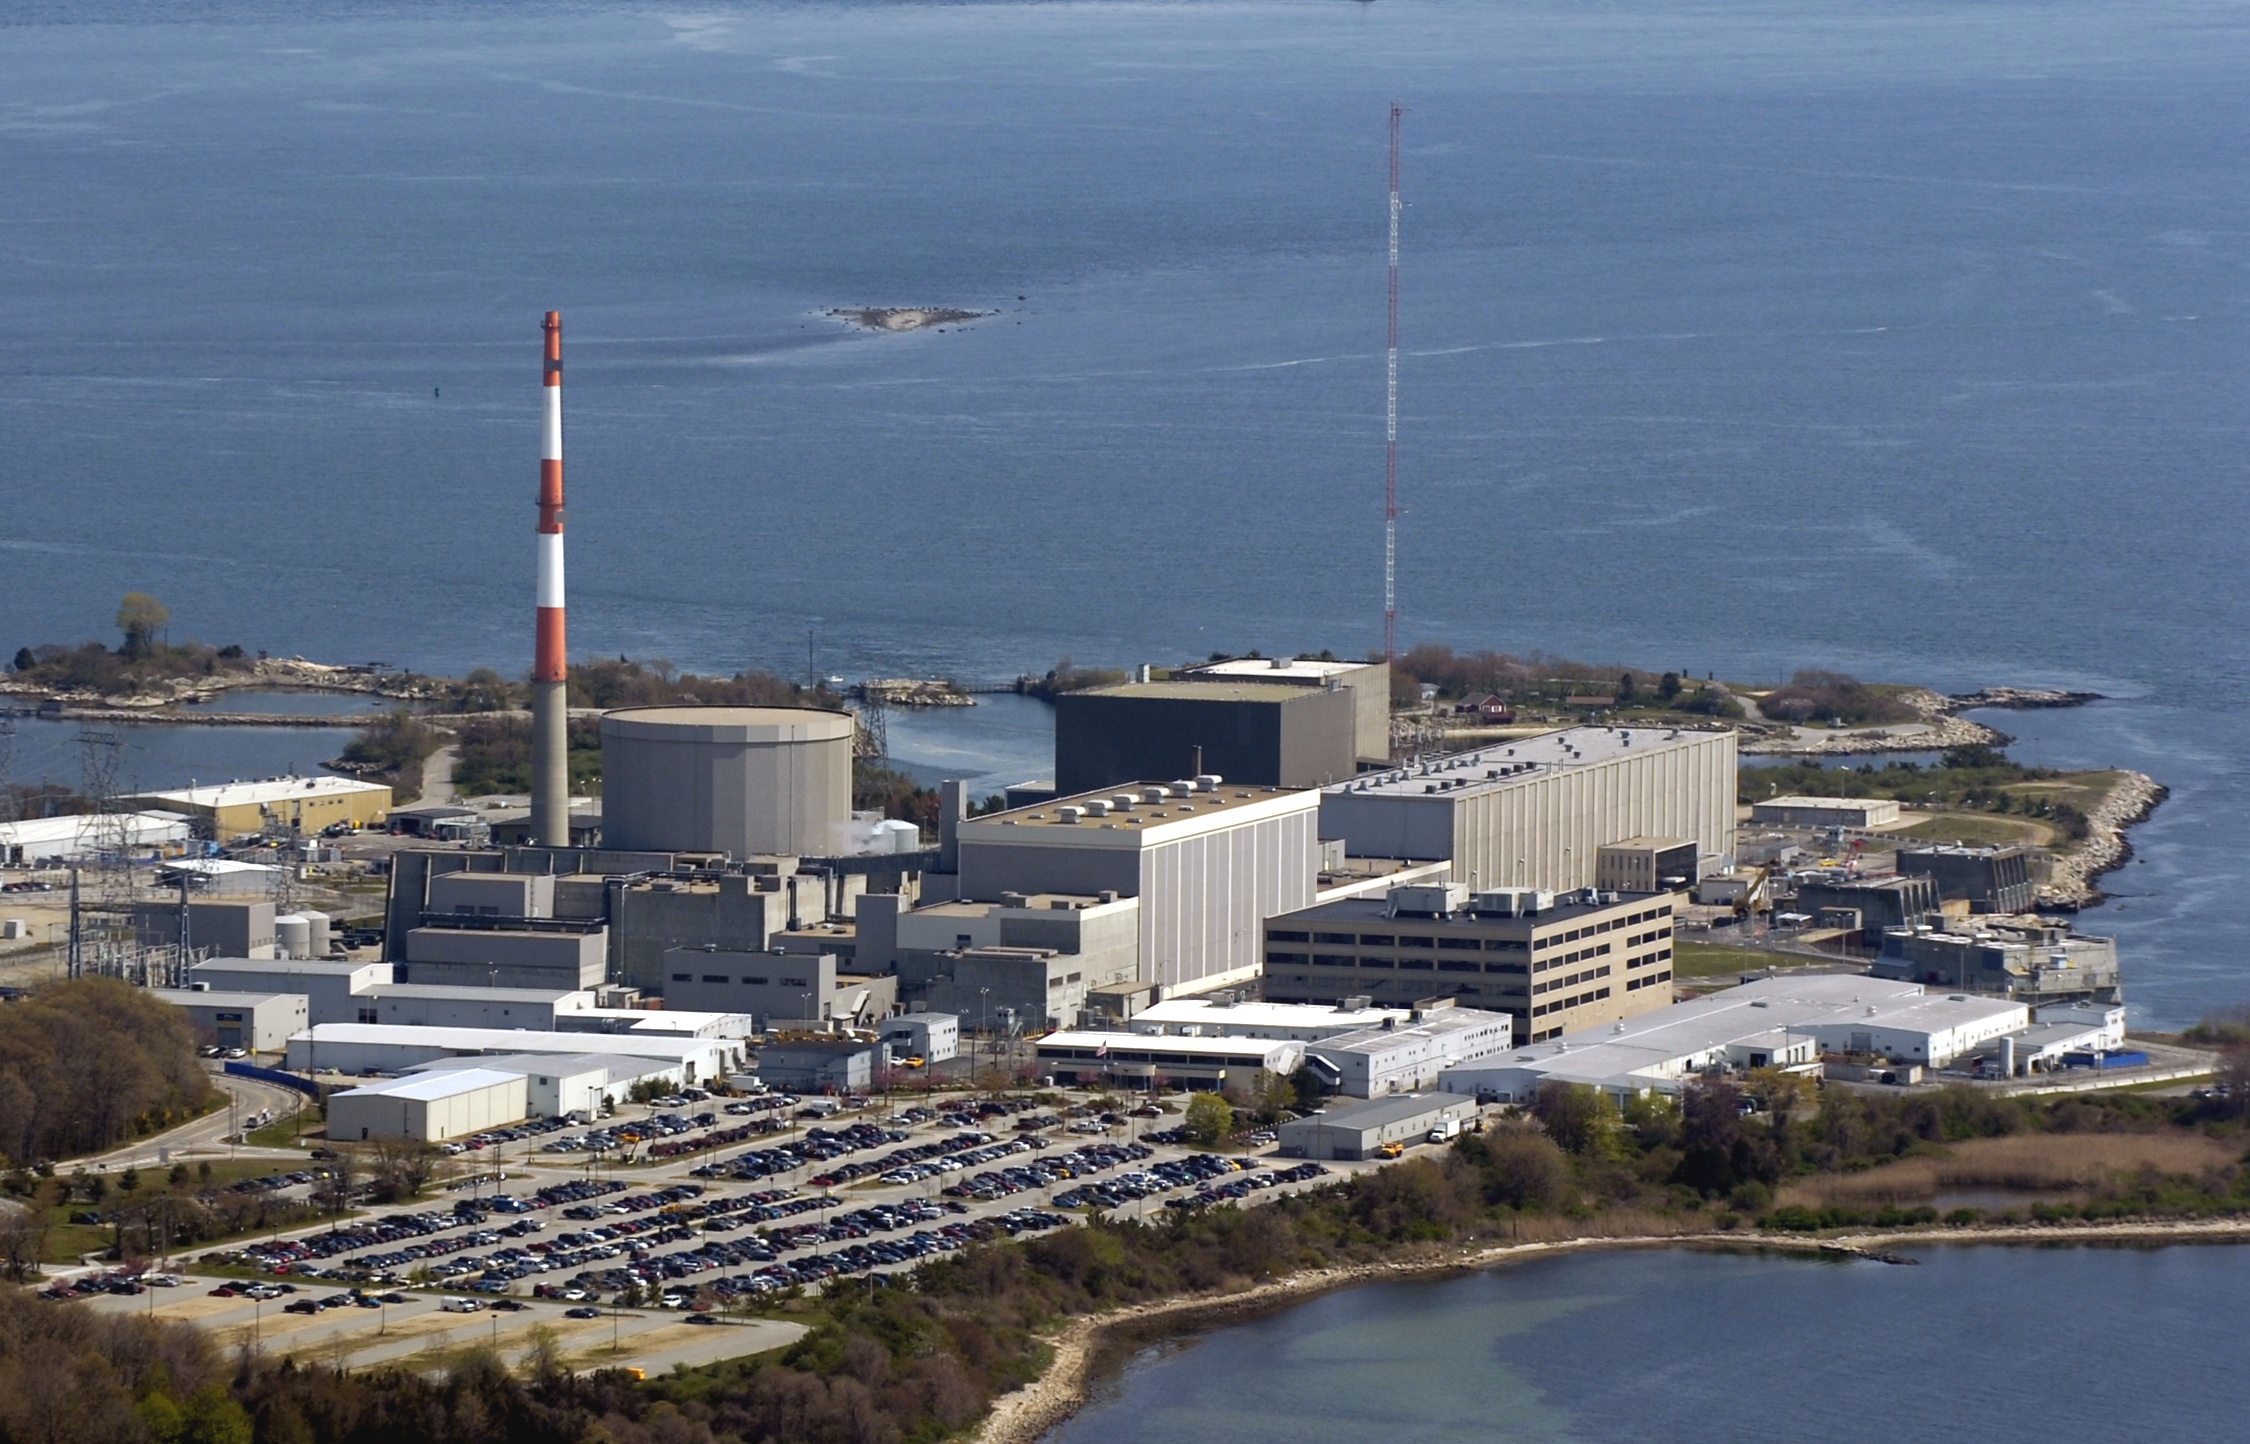 On CT's budget, it turns out there may be a nuclear option